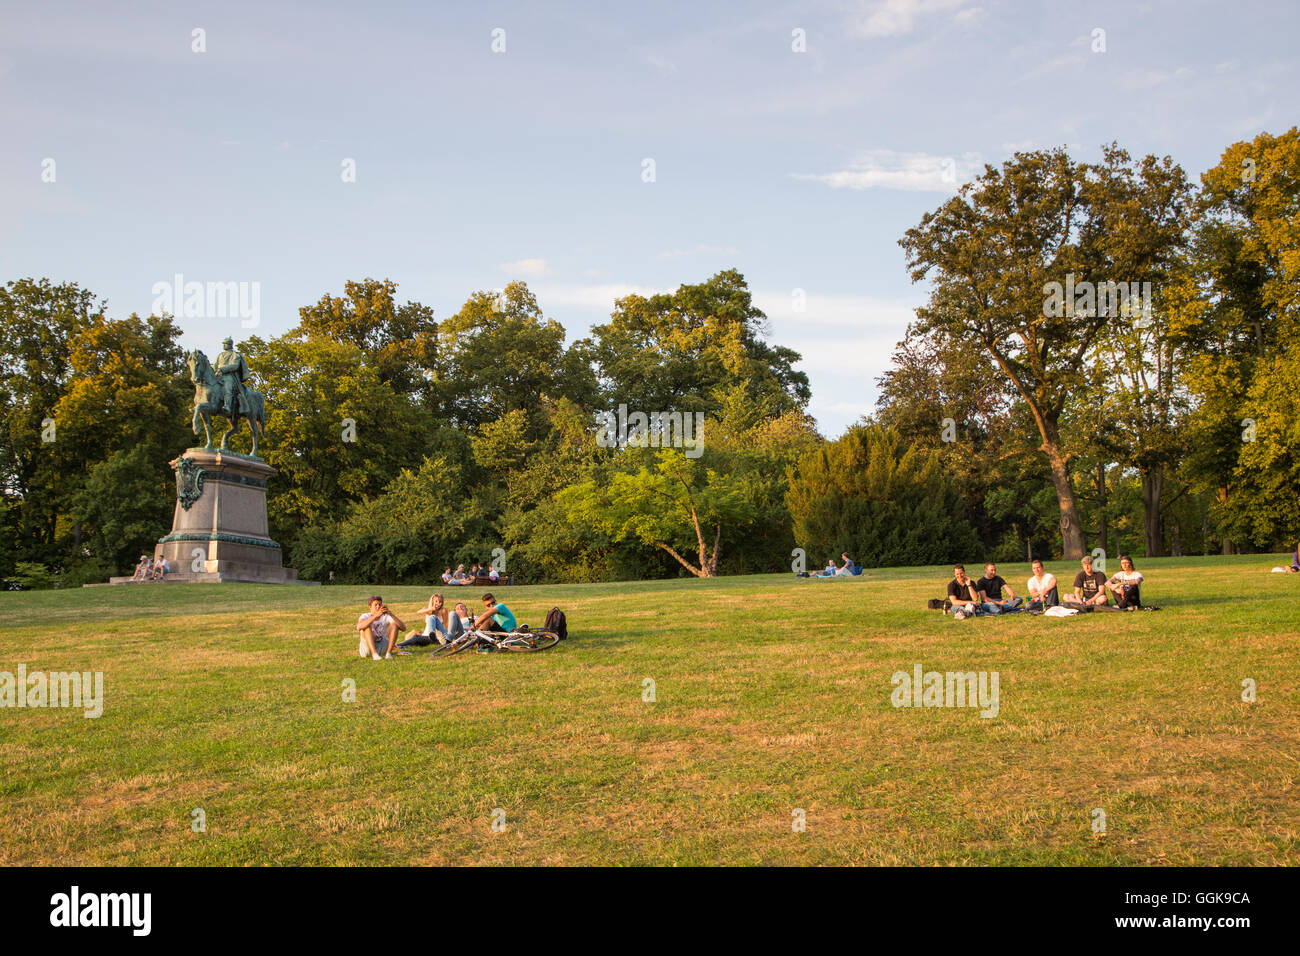 People relaxing on the lawn in Hofgarten Garden, Coburg, Franconia, Bavaria, Germany - Stock Image